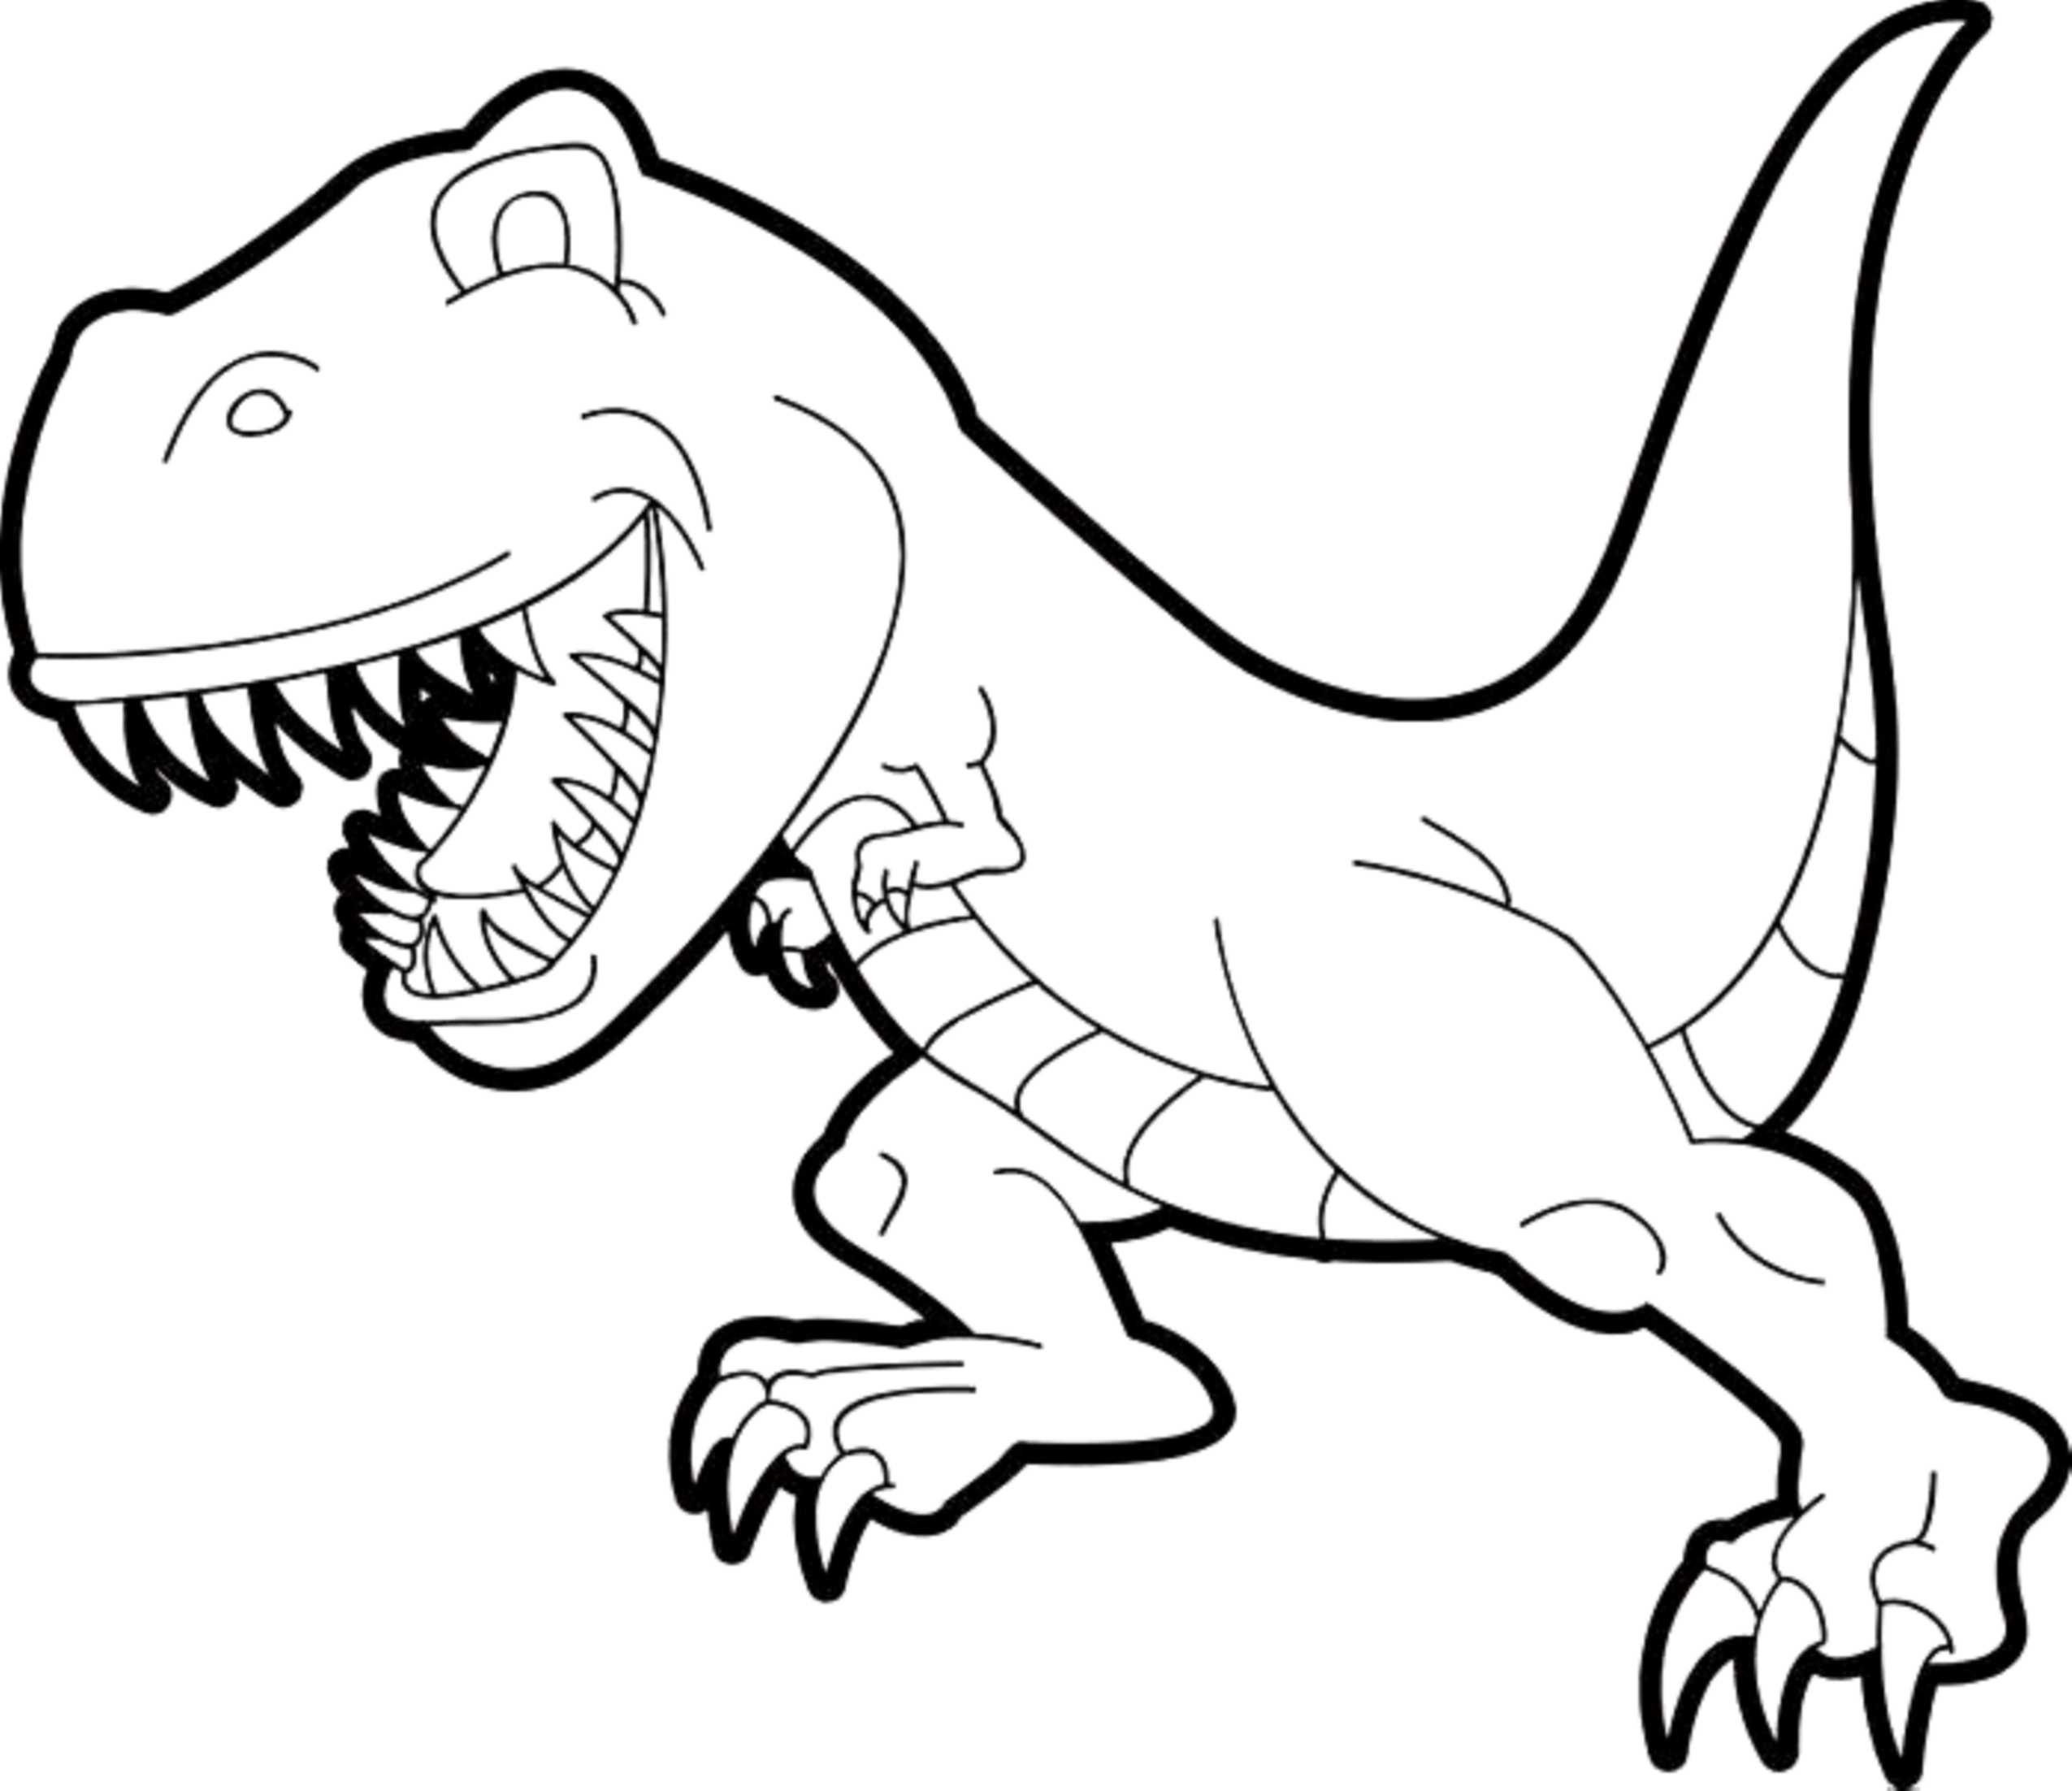 dinosaur pictures for kids print download dinosaur t rex coloring pages for kids kids for dinosaur pictures